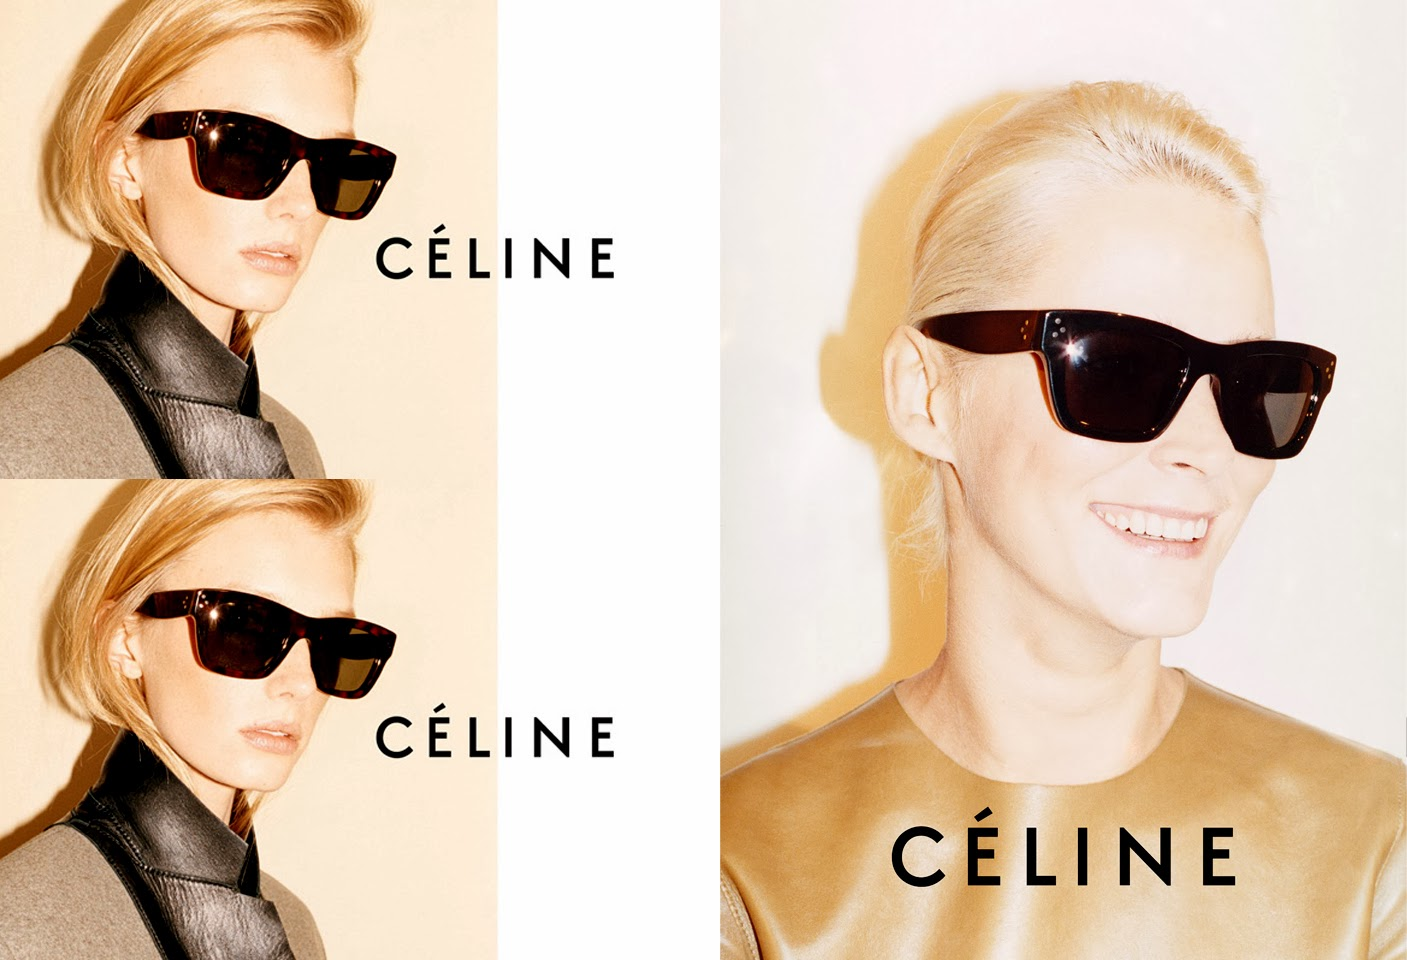 980d8565c17 The woman of Céline proudly carries the brand s philosophy with her  confident spirit. Any career ambition merges with her most docile  character